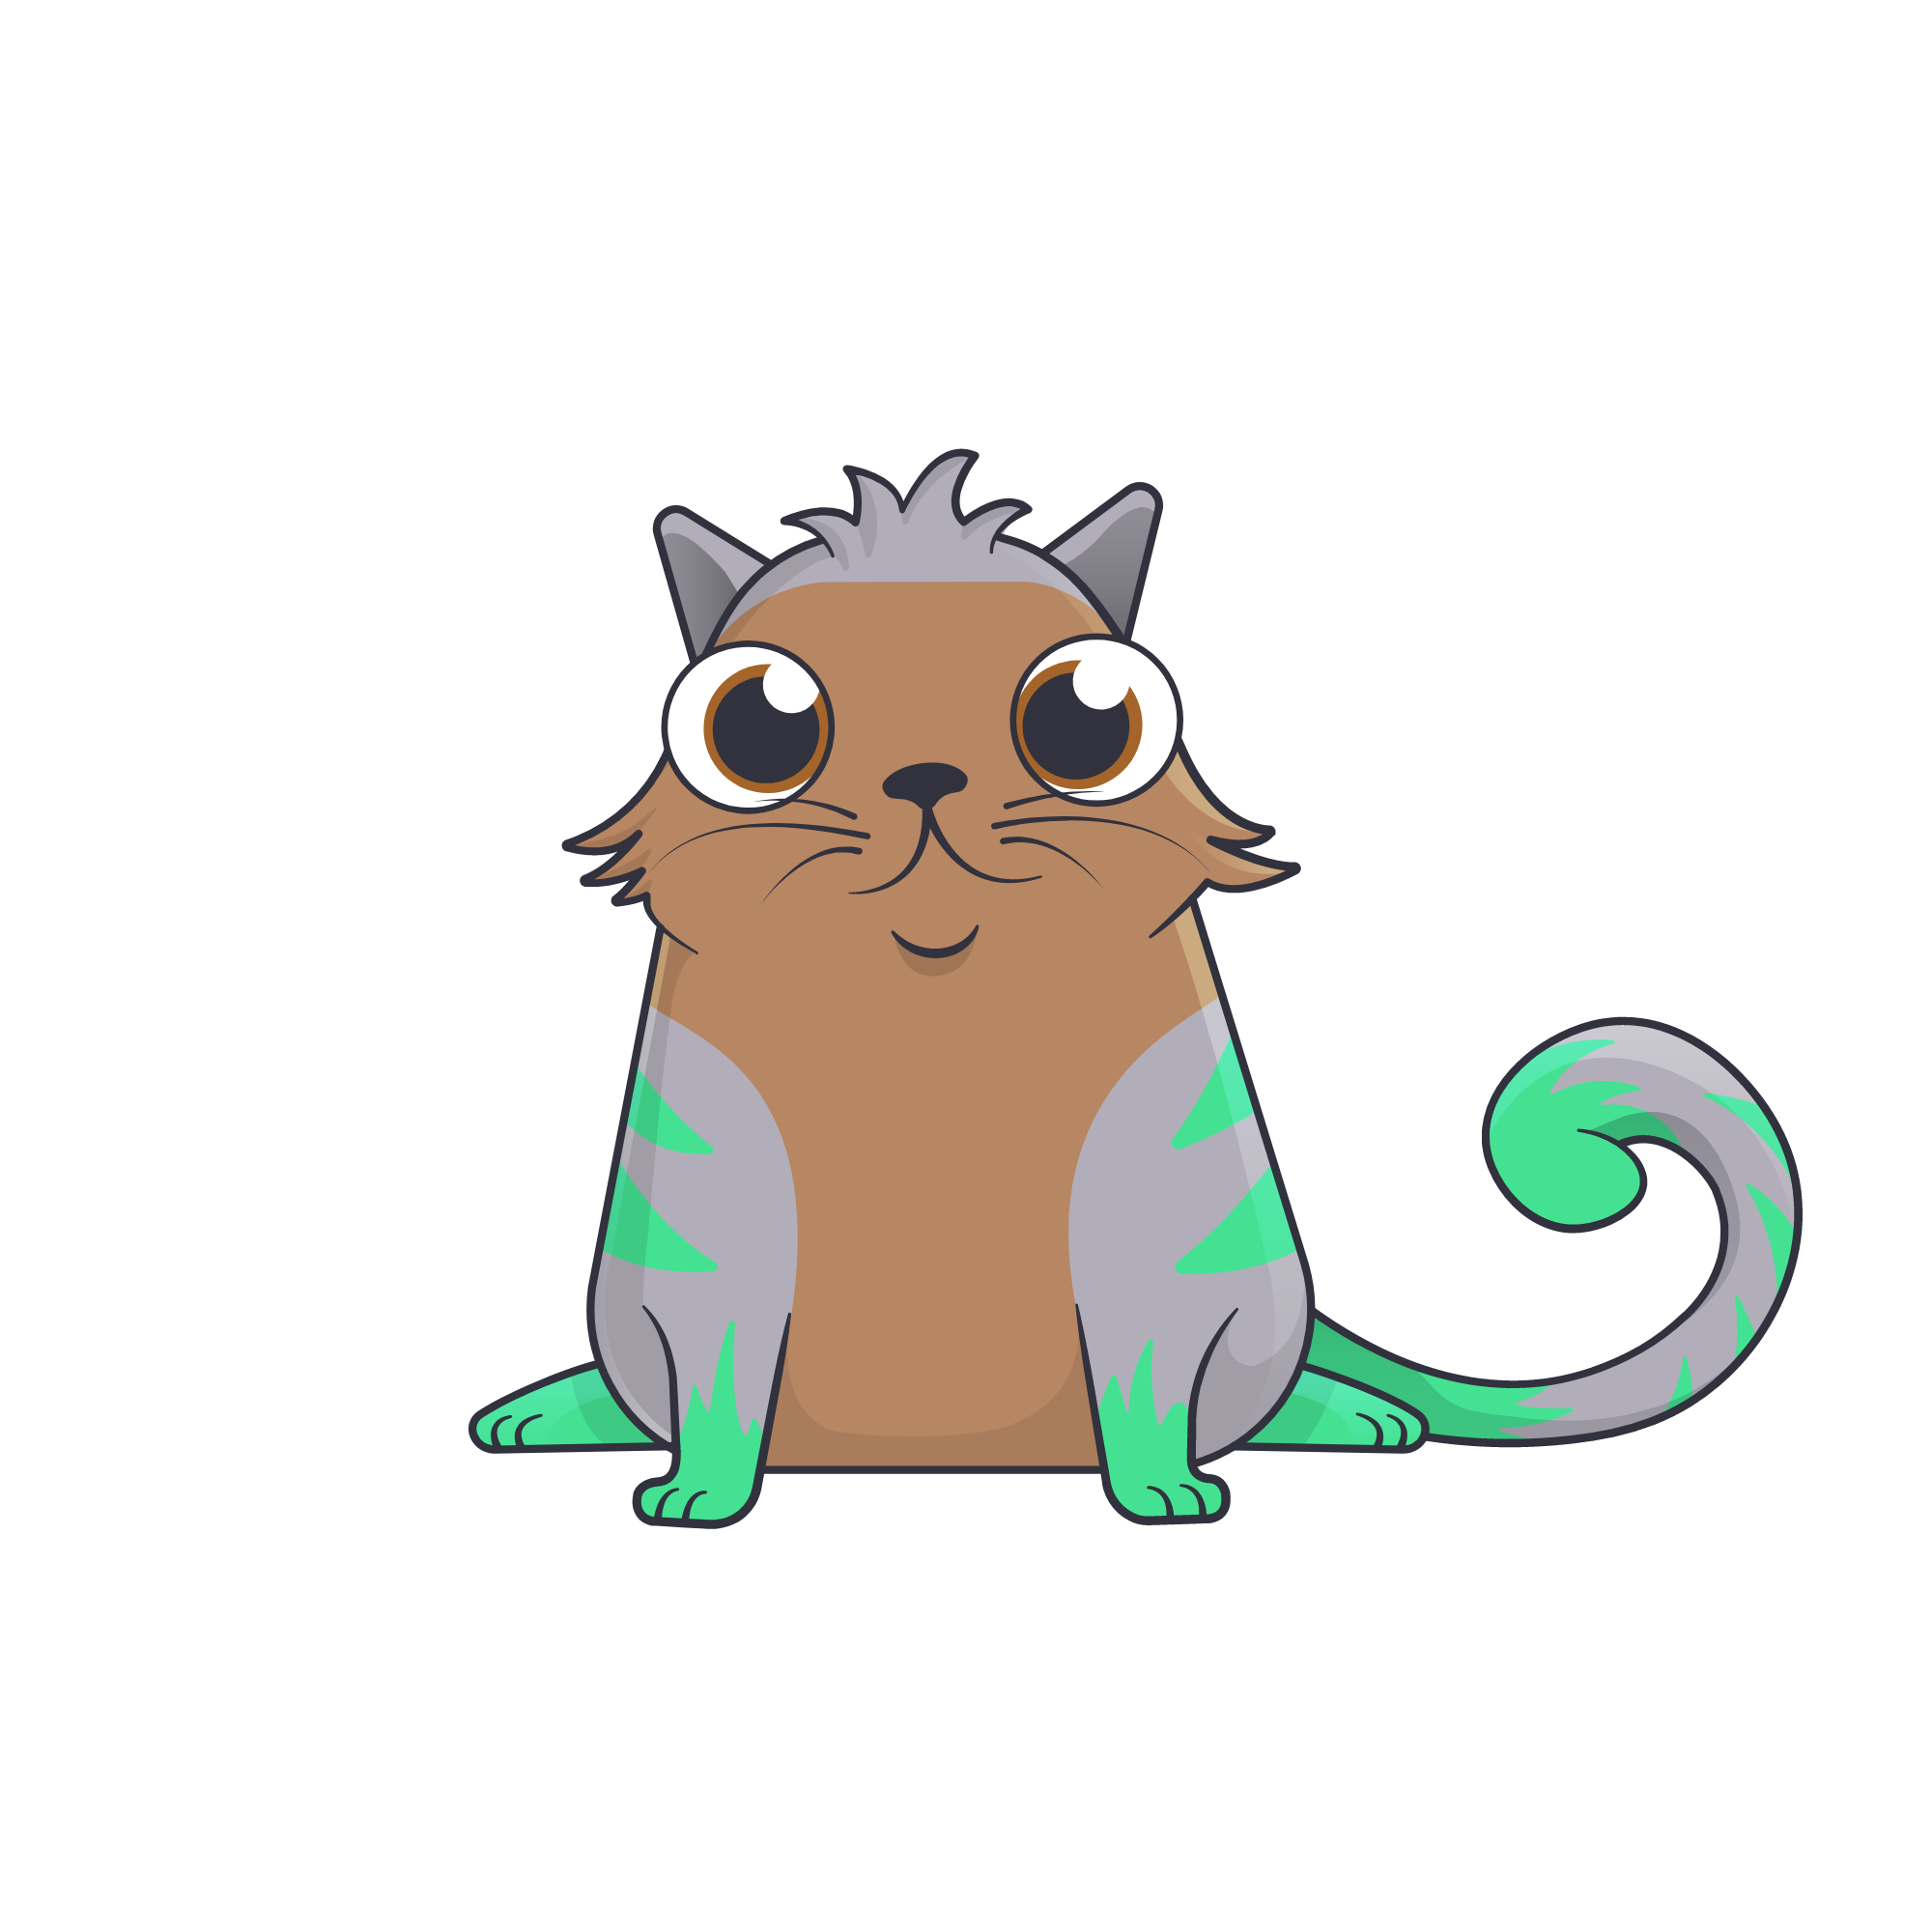 cryptokitty #1435627